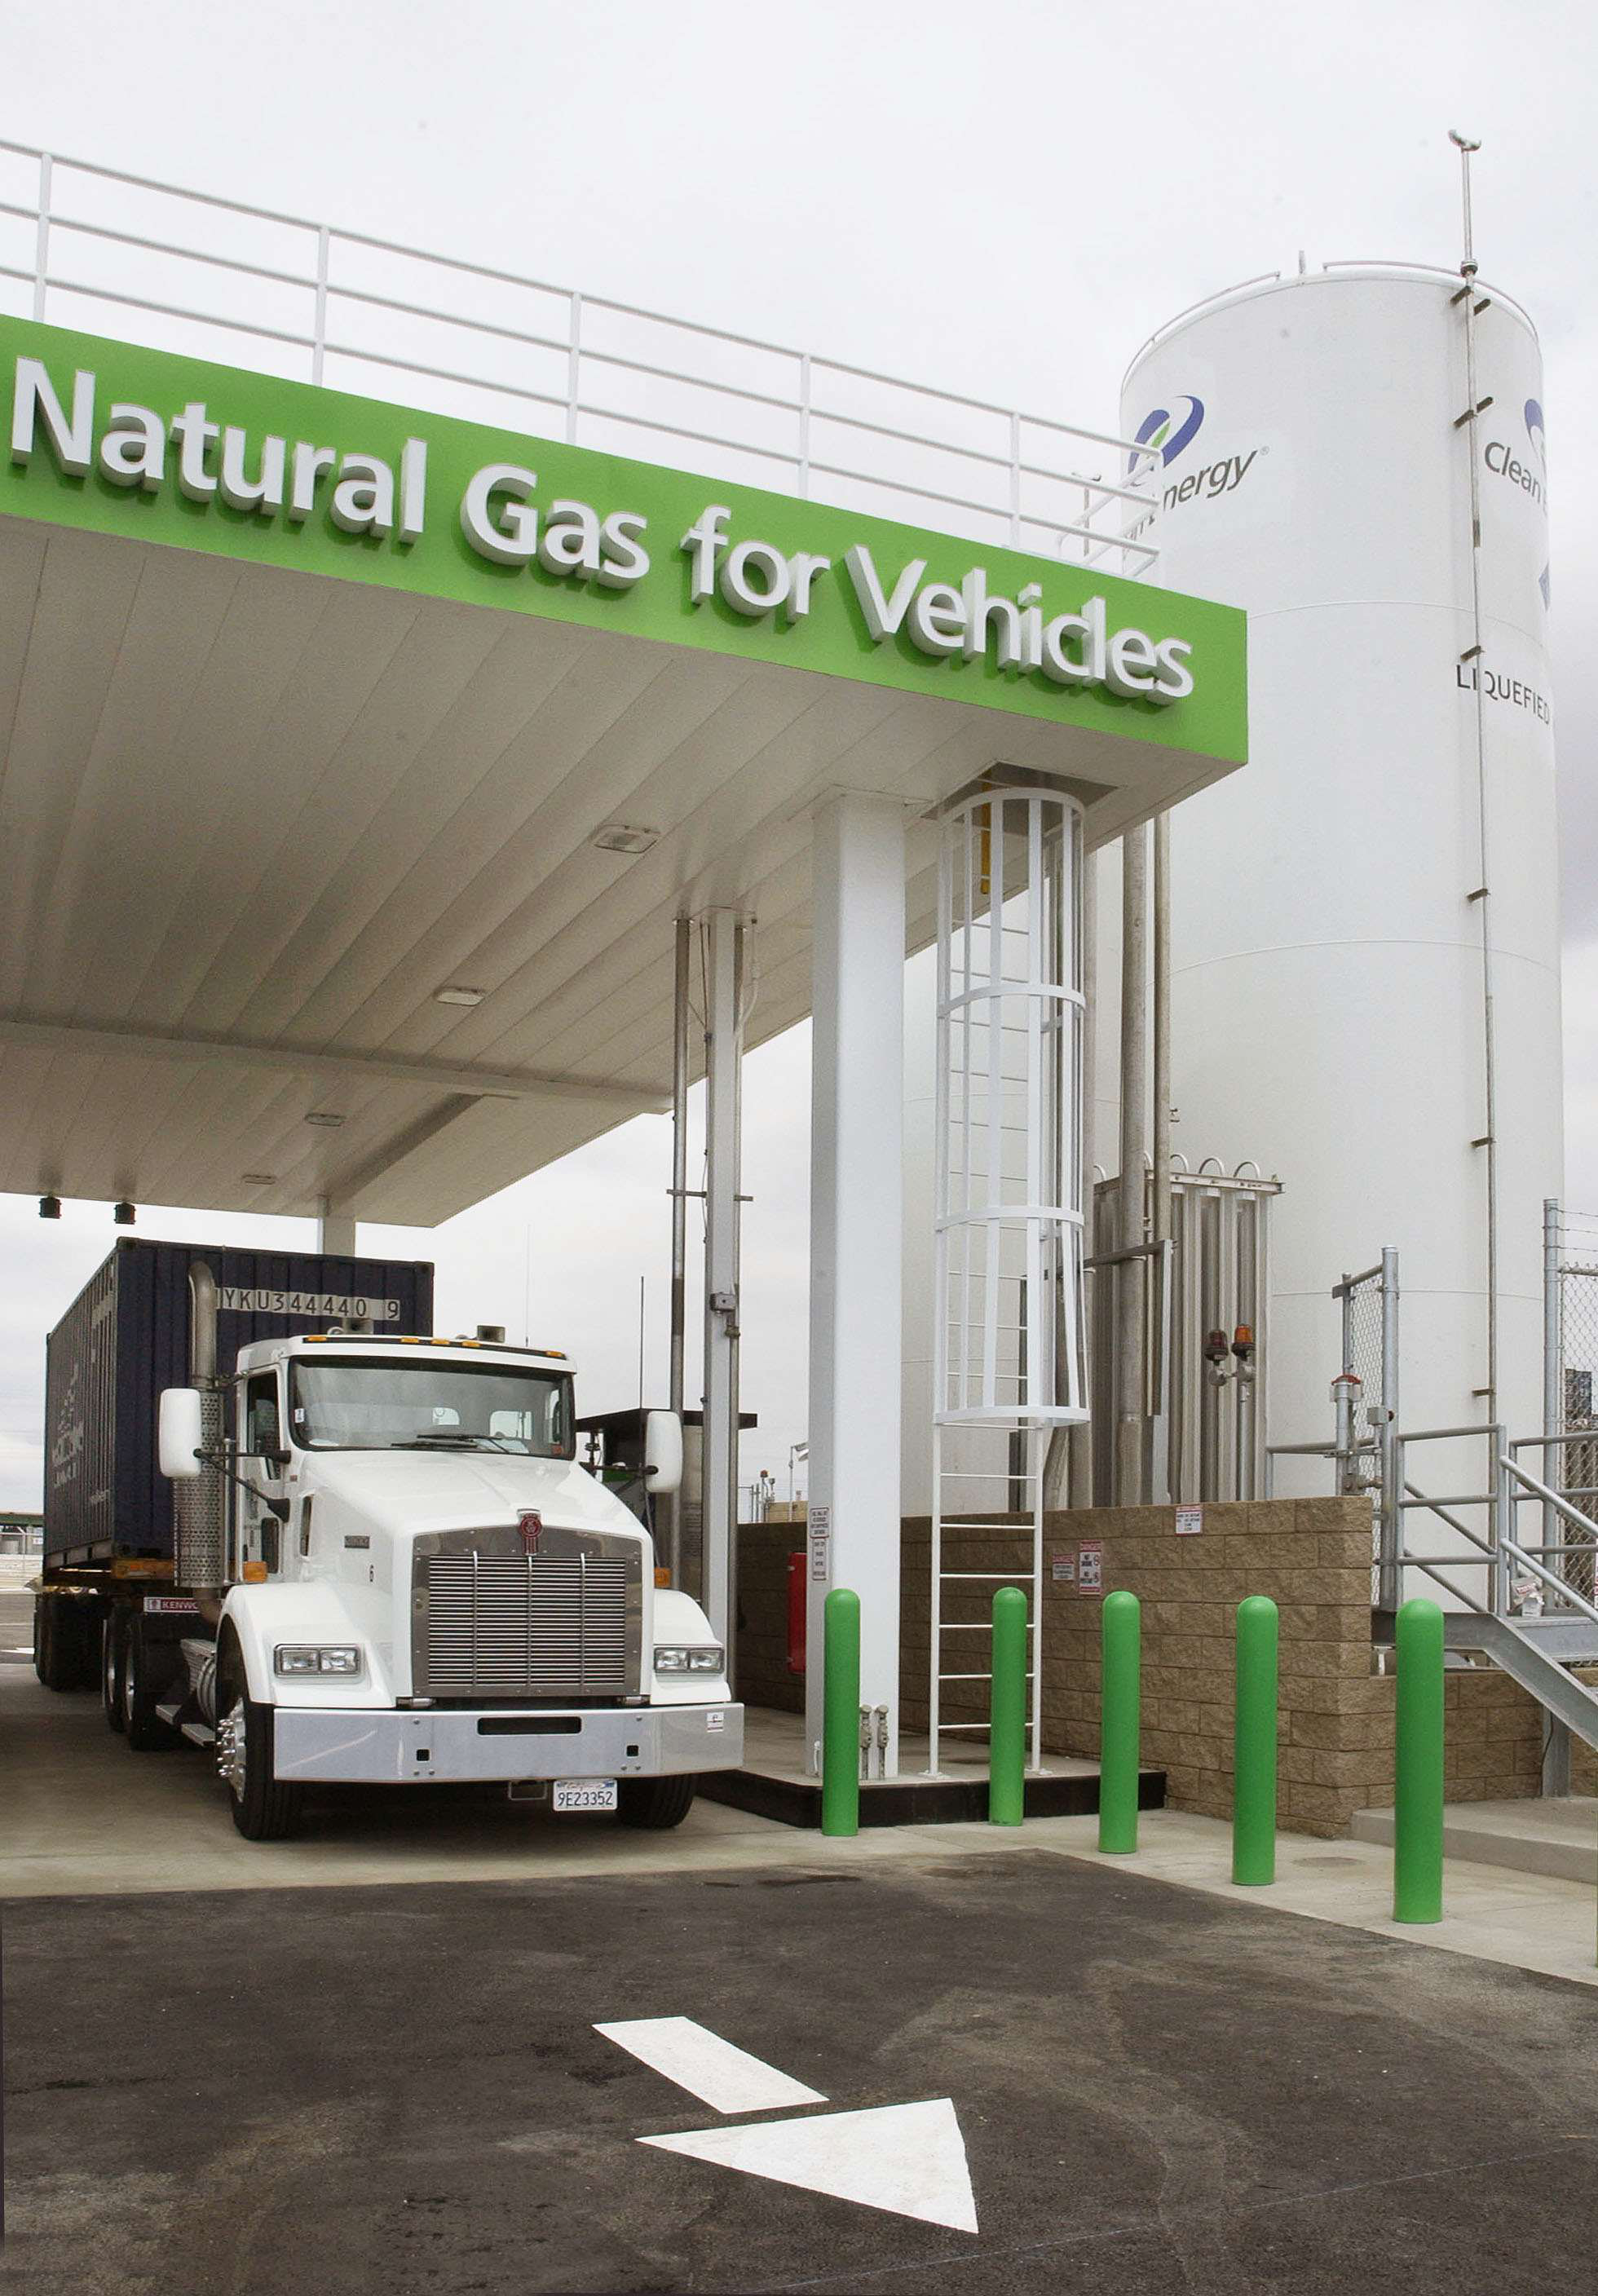 Bill floated in Congress to reduce excise tax on alternative fuel trucks